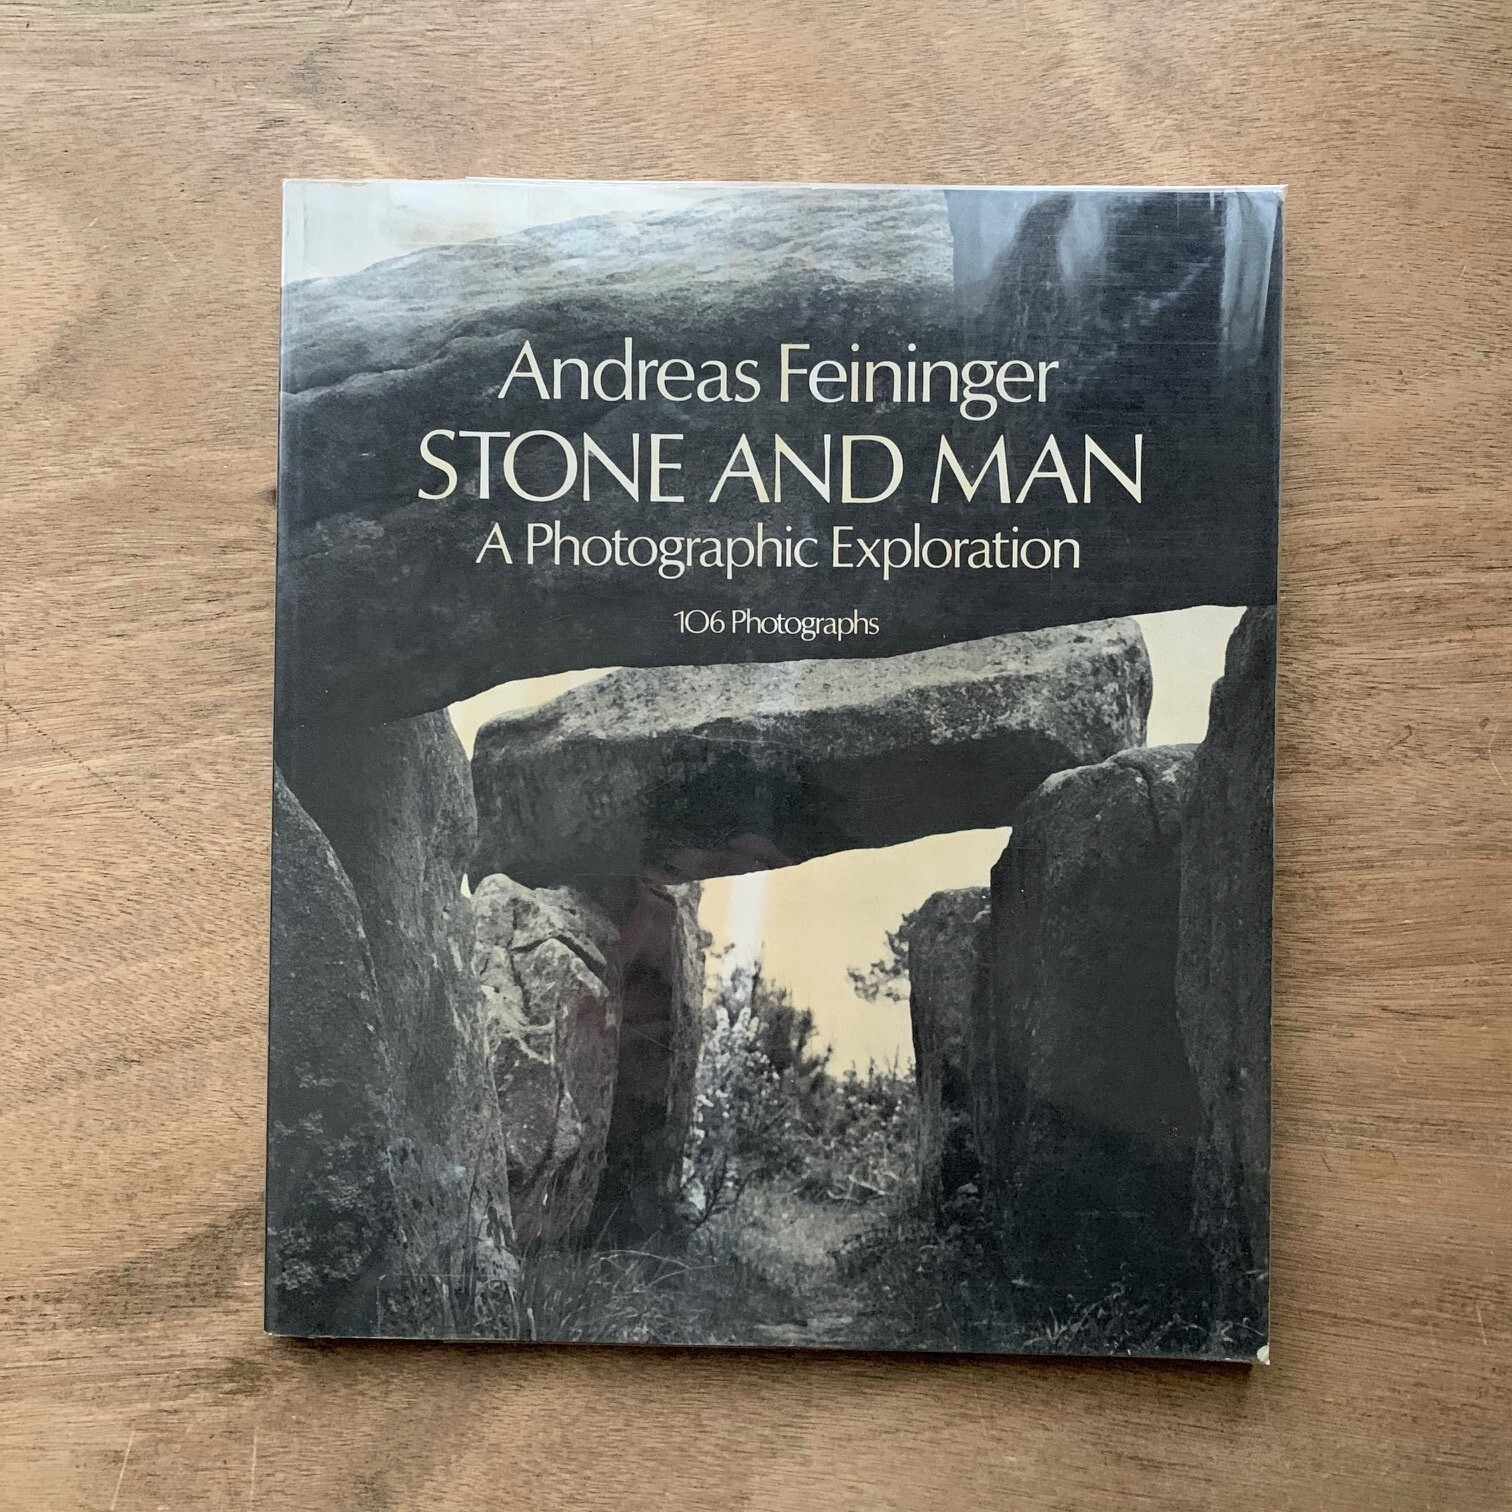 Stone and Man: / Andreas Feininger アンドレアス・ファイニンガー